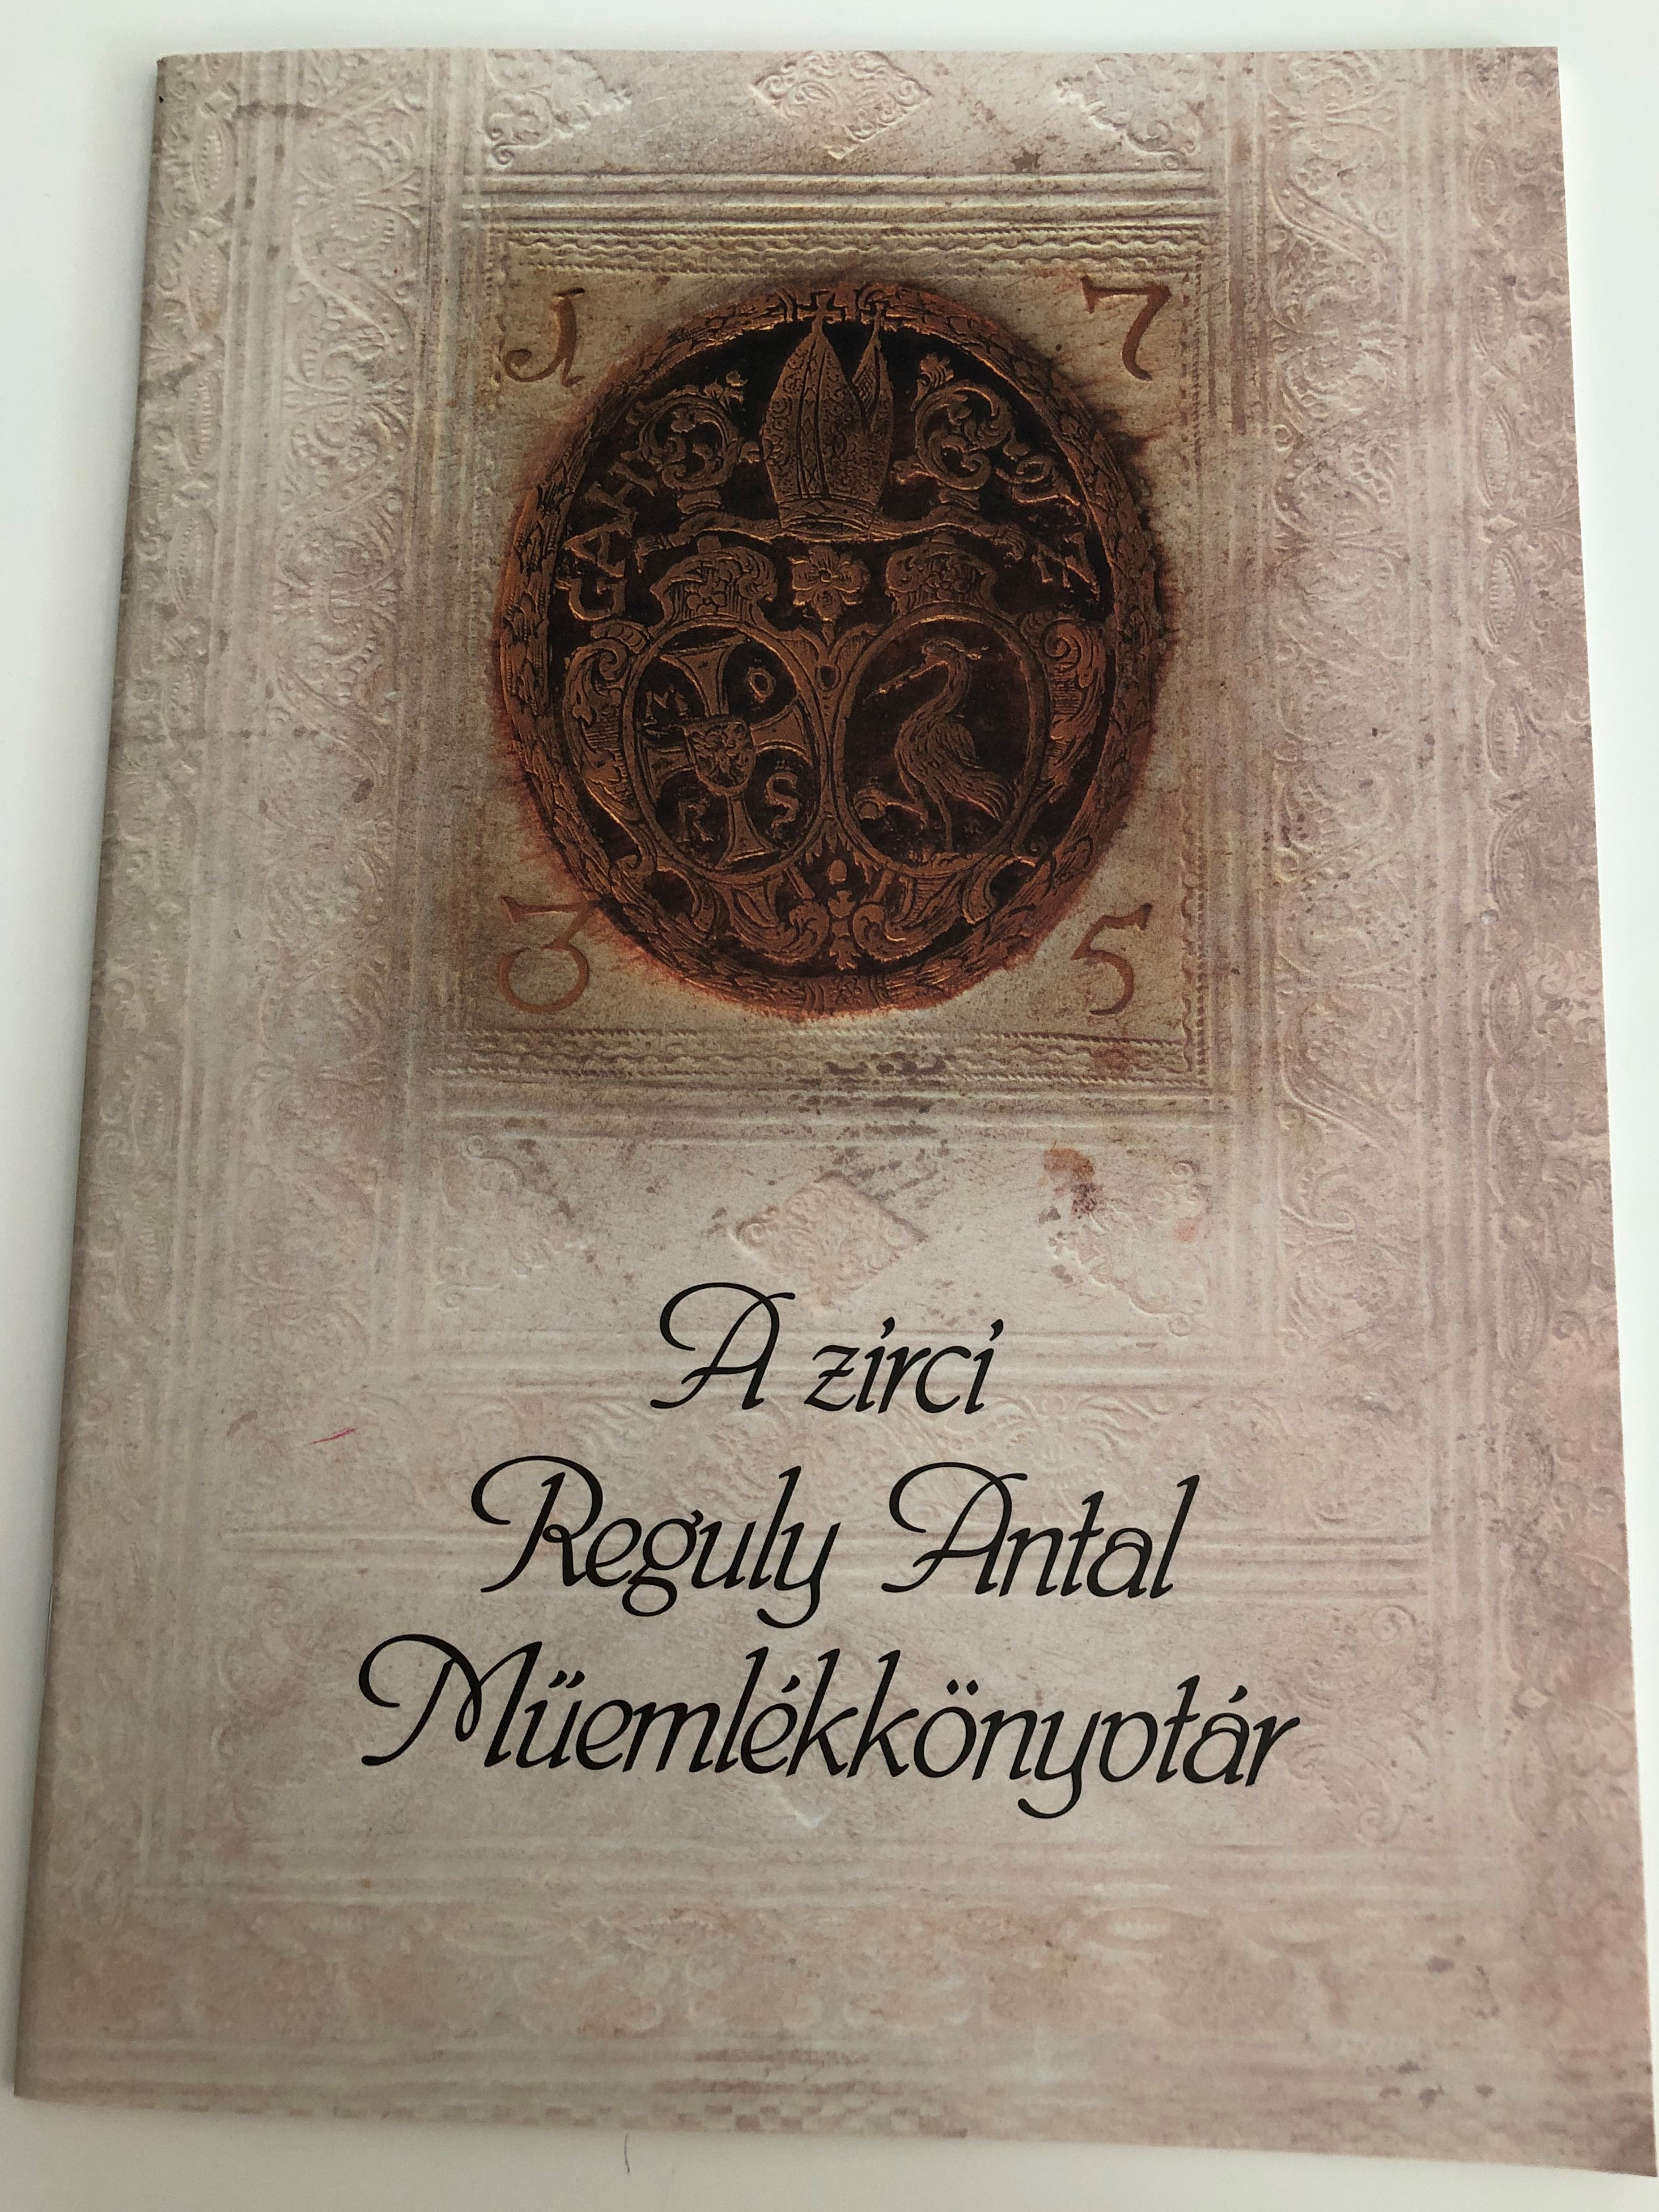 a-zirci-reguly-antal-m-eml-kk-nyvt-r-by-urb-n-guszt-vn-hungarian-language-book-presenting-the-antal-reguly-historic-library-in-zirc-1-.jpg